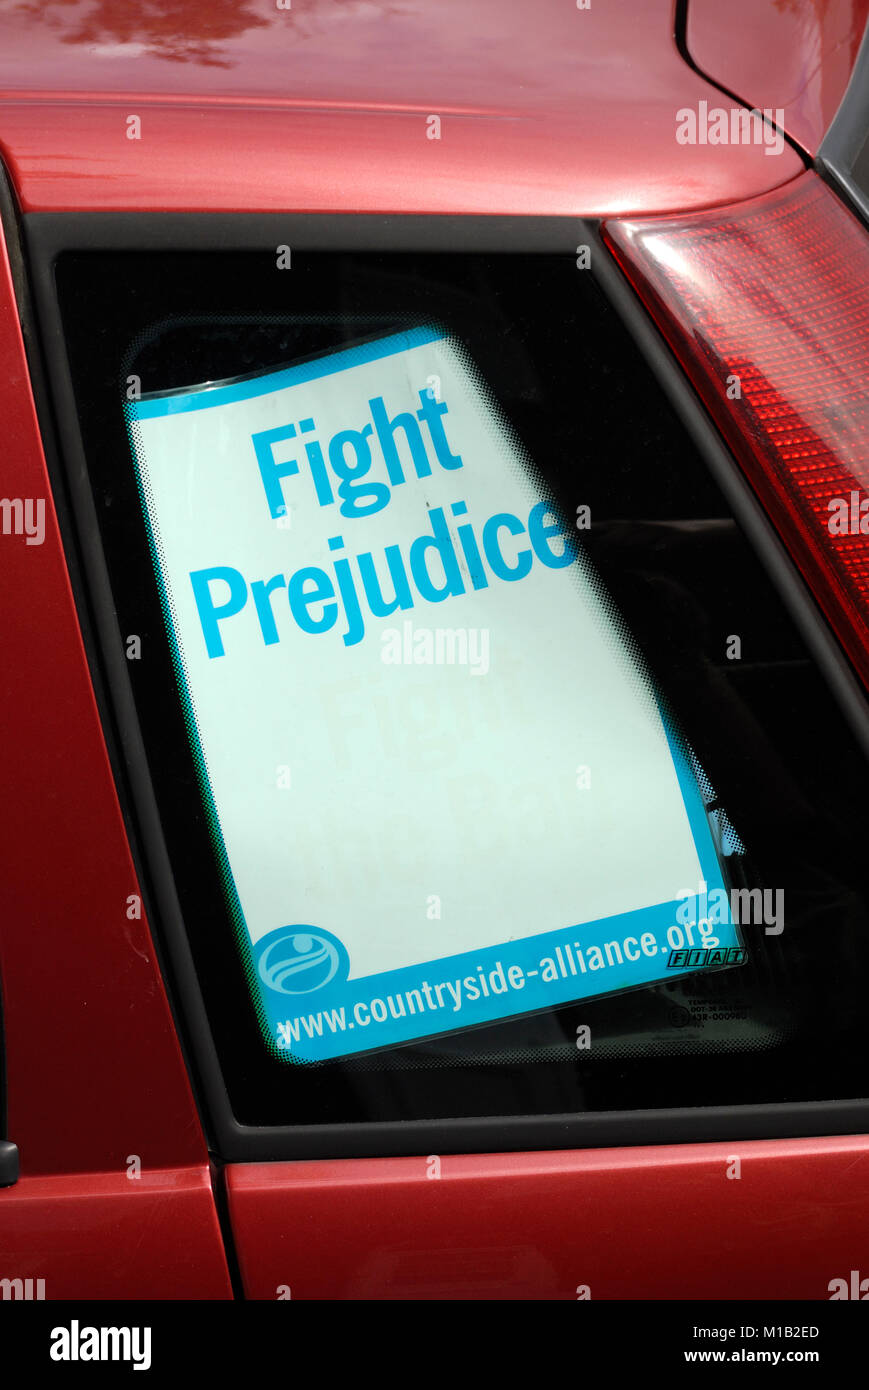 Countryside Alliance poster in a car window, Wales,  UK. Stock Photo